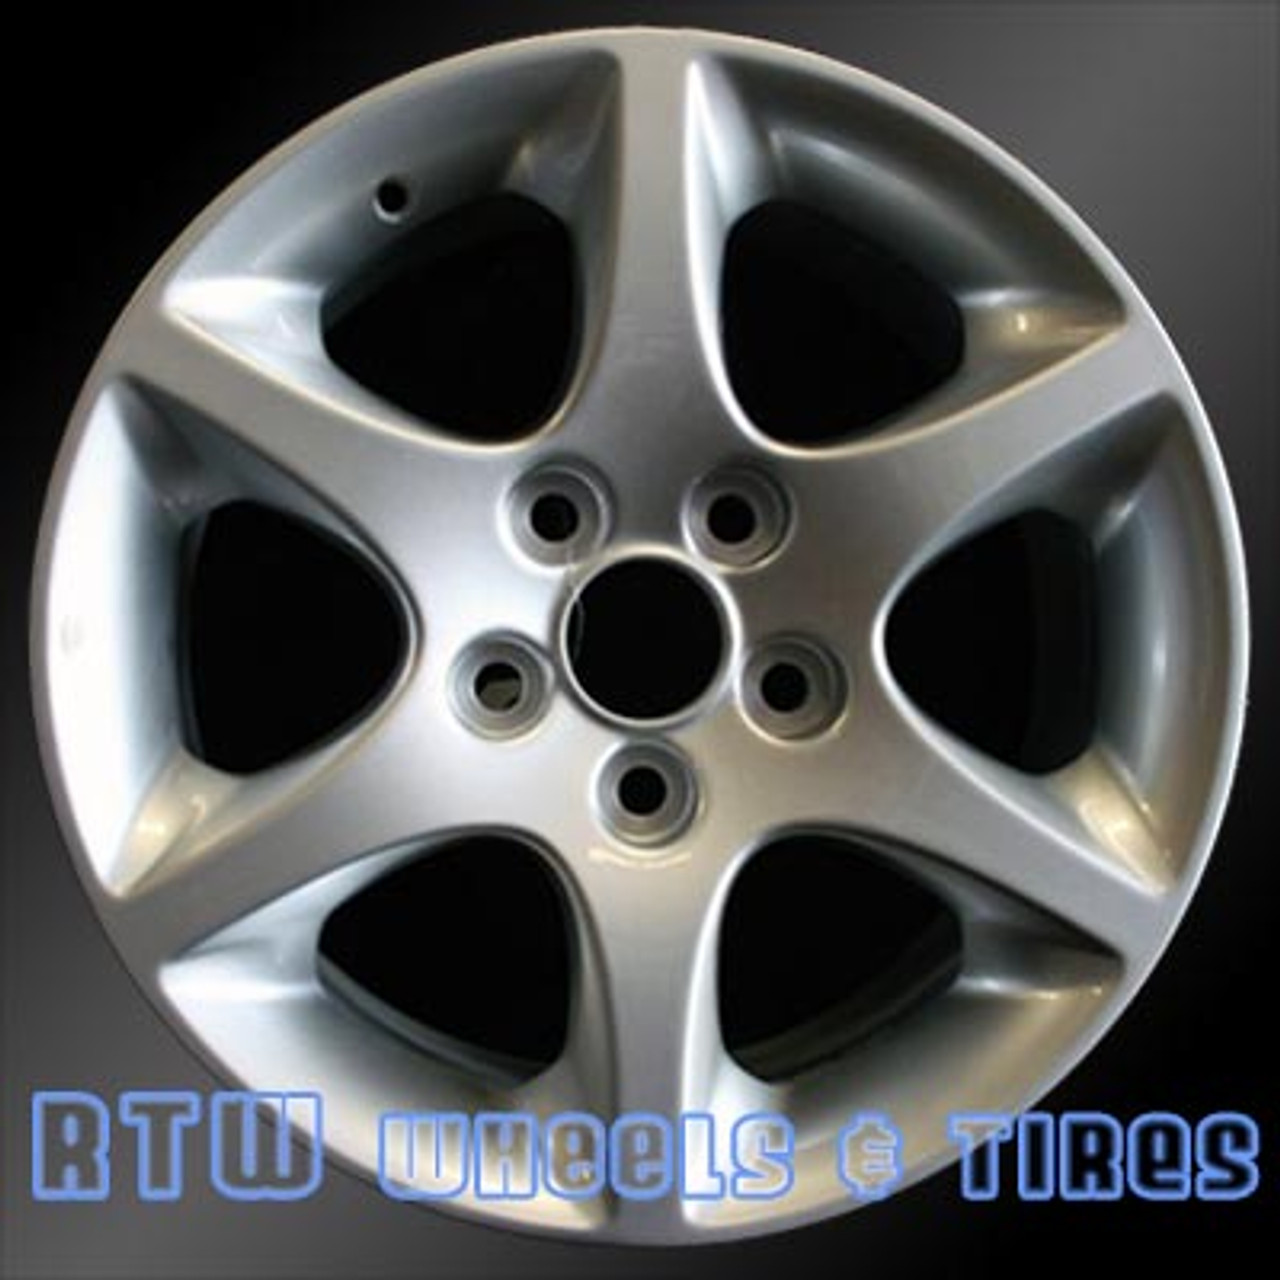 Lexus 2001 Is300 For Sale: Lexus Wheels For Sale GS300 GS430 01-05 Silver Rims 74168